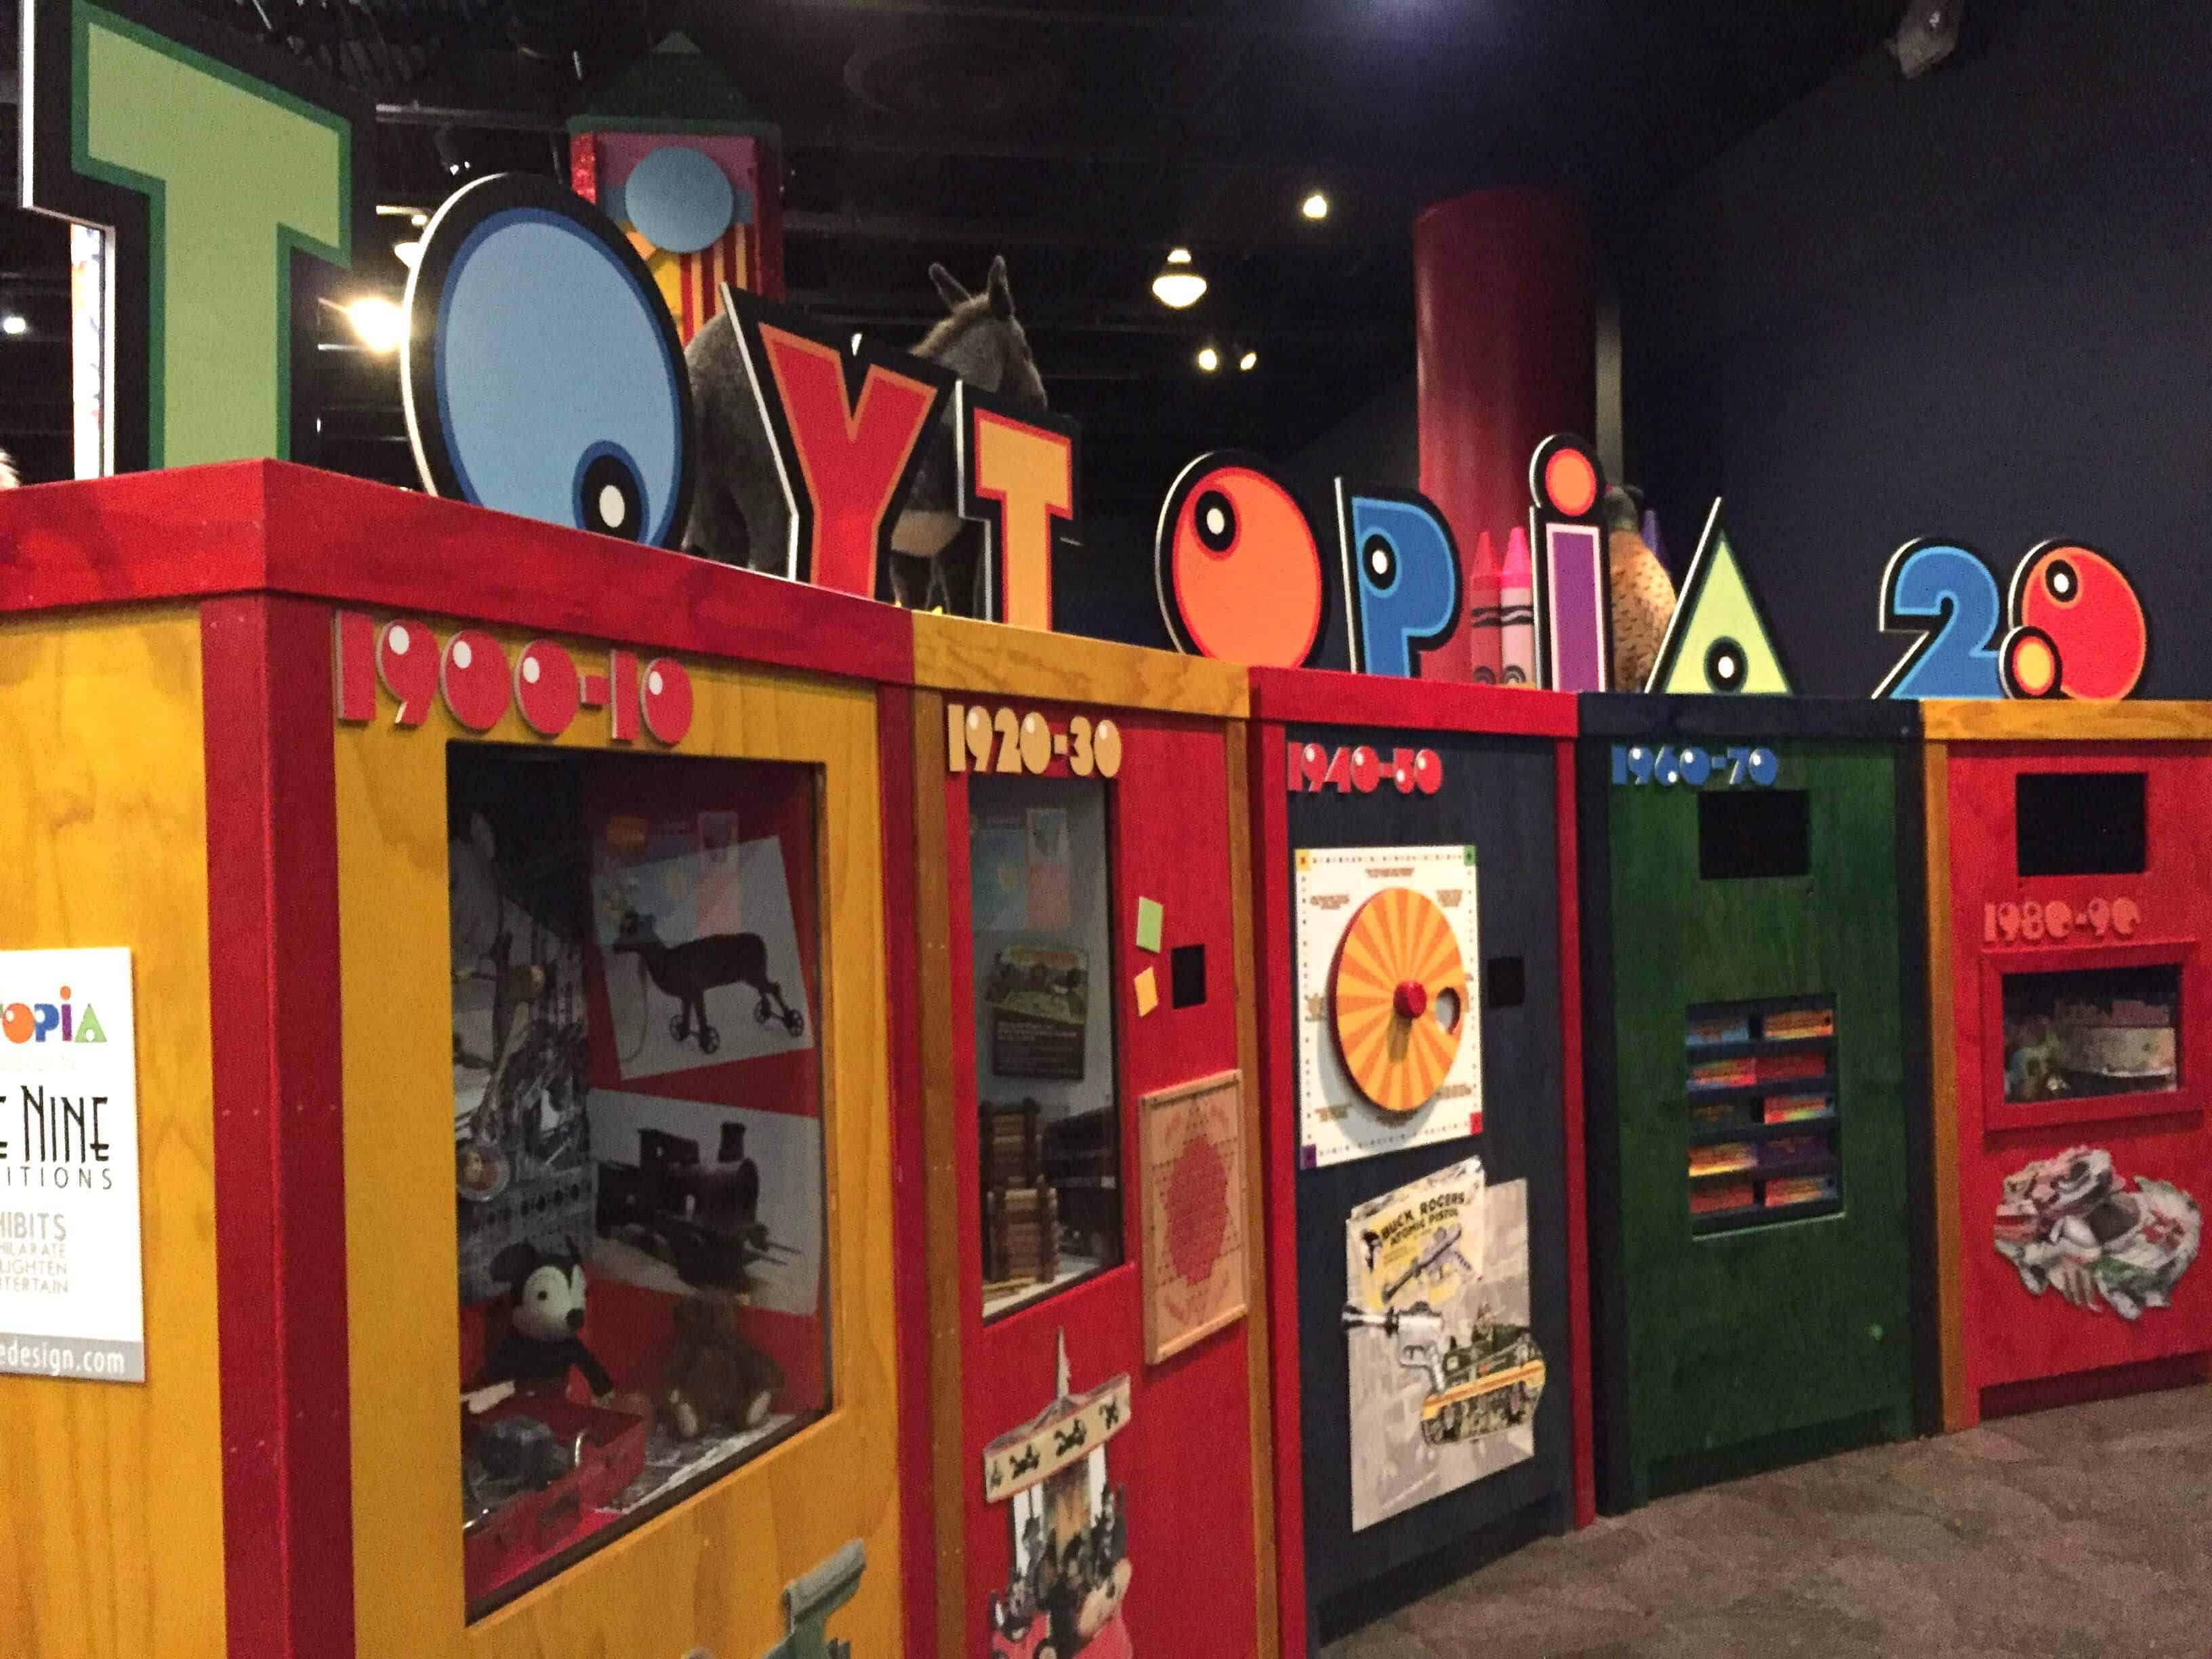 Part of the Toytopia exhibit showing popular toys through the decades